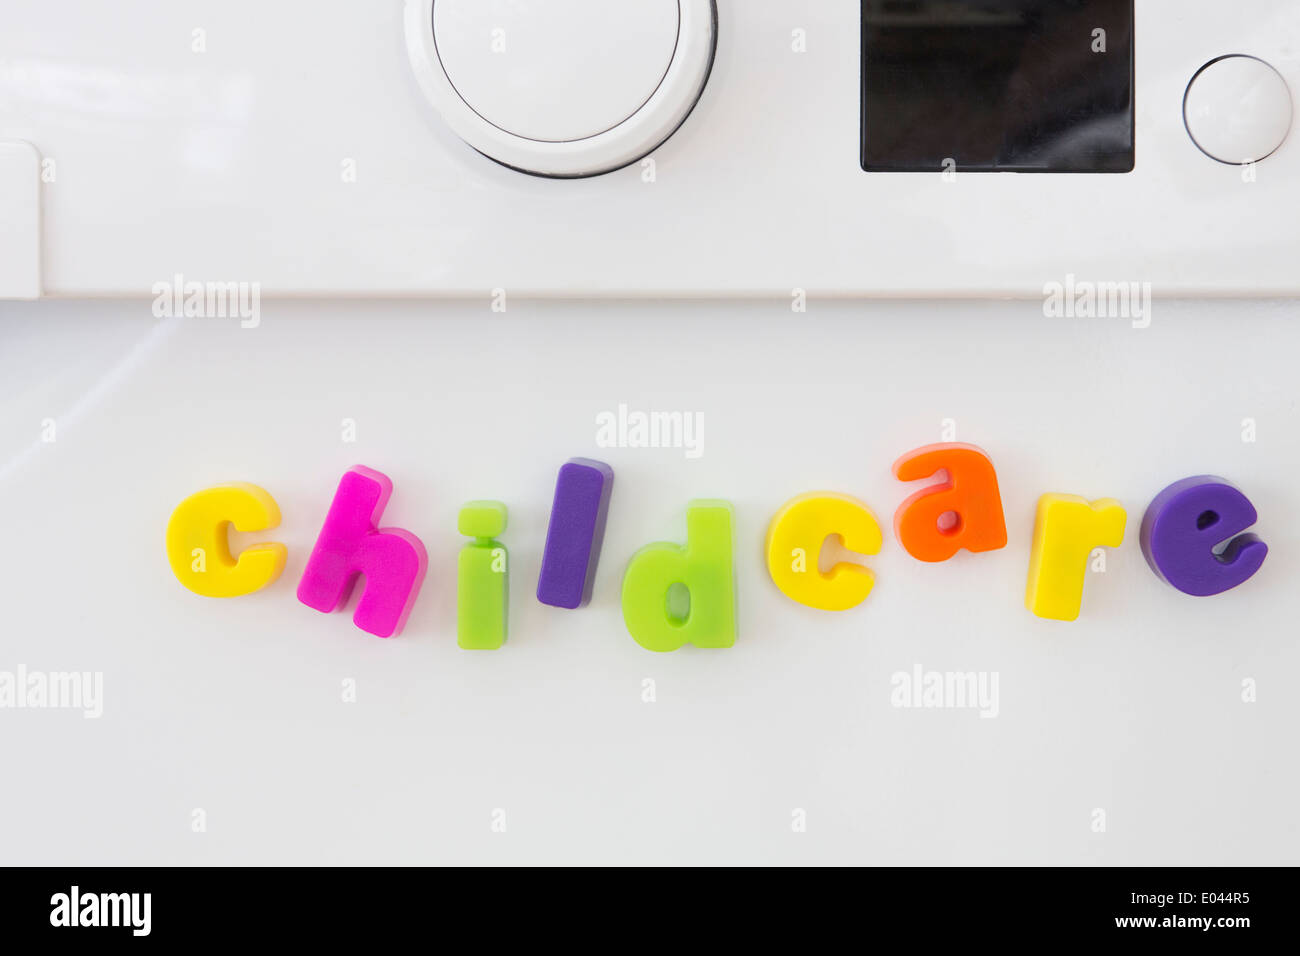 Toy Magnetic Letters Spelling Out Childcare On Washine Machine - Stock Image